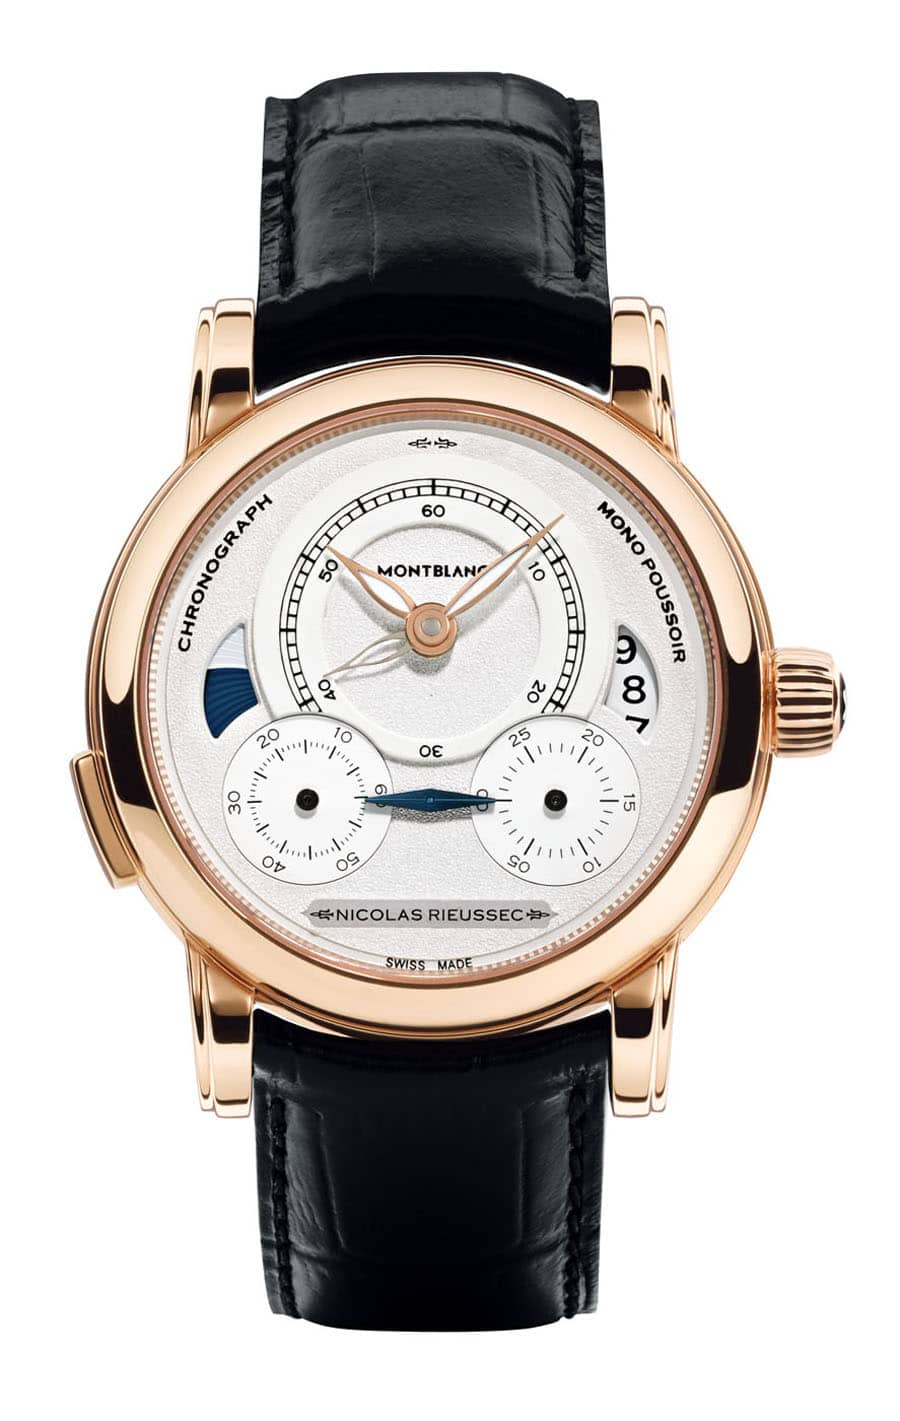 Montblanc: Homage to Nicolas Rieussec, Rotgoldgehäuse